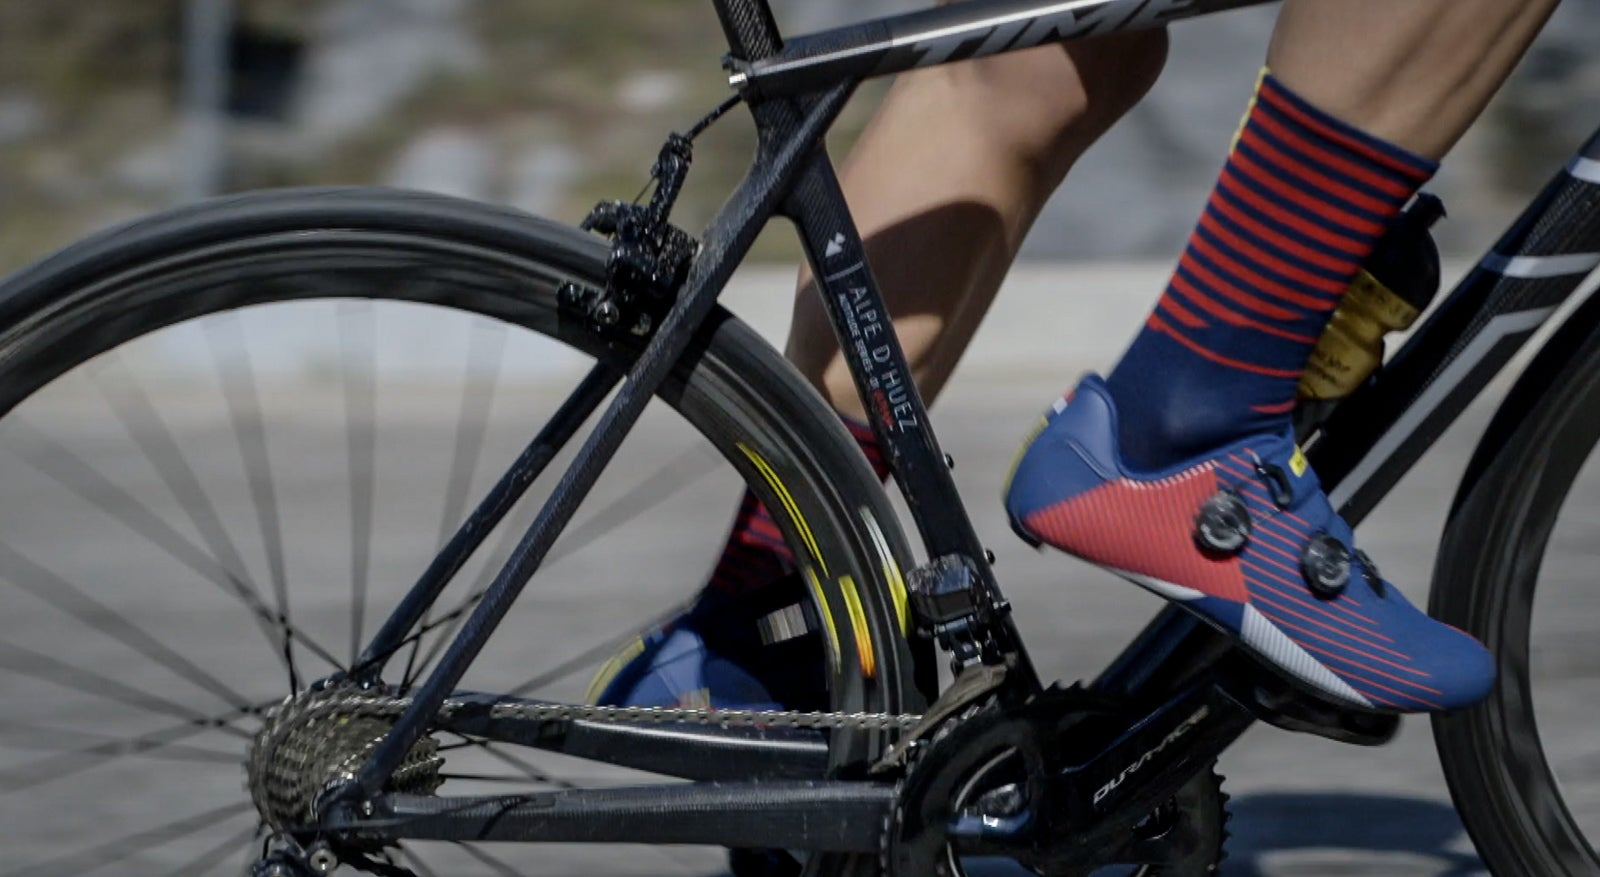 405da1858ed PELOTON Magazine heads to the famous Alpe d'Huez climb to test the latest  from Mavic, new Cosmic Pro Carbon SL UST wheels. They debut a new rim brake  track ...